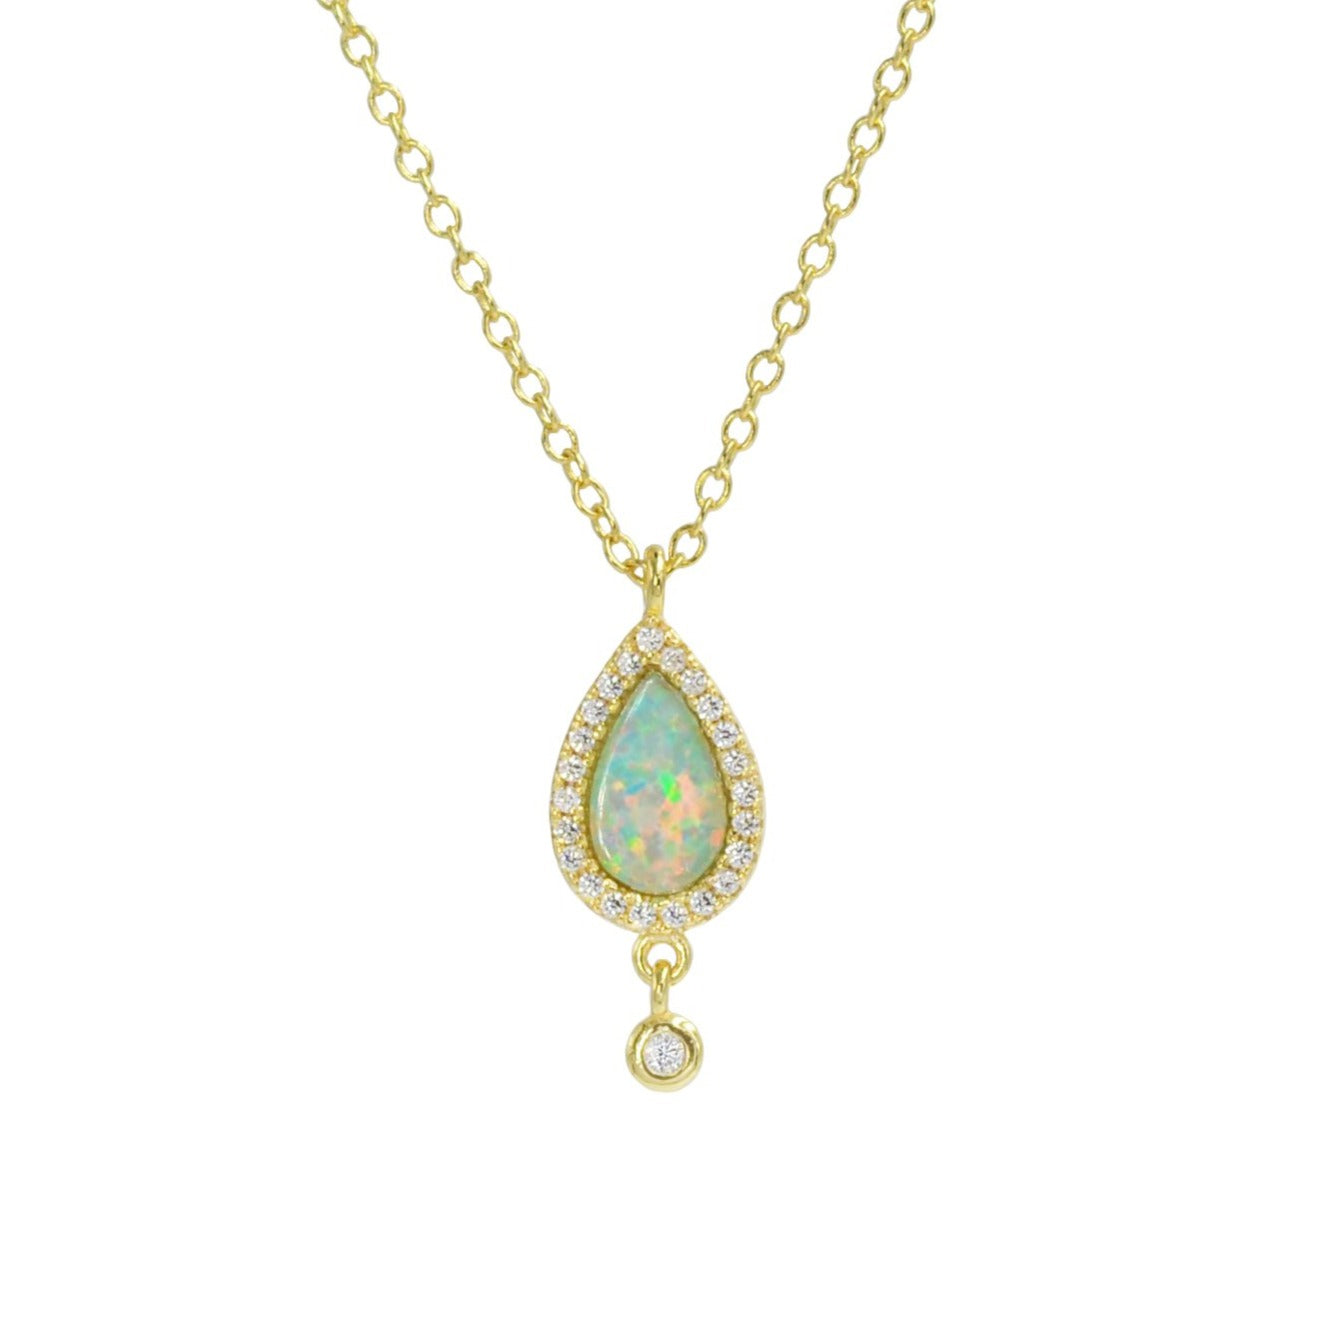 Opal Teardrop Necklace